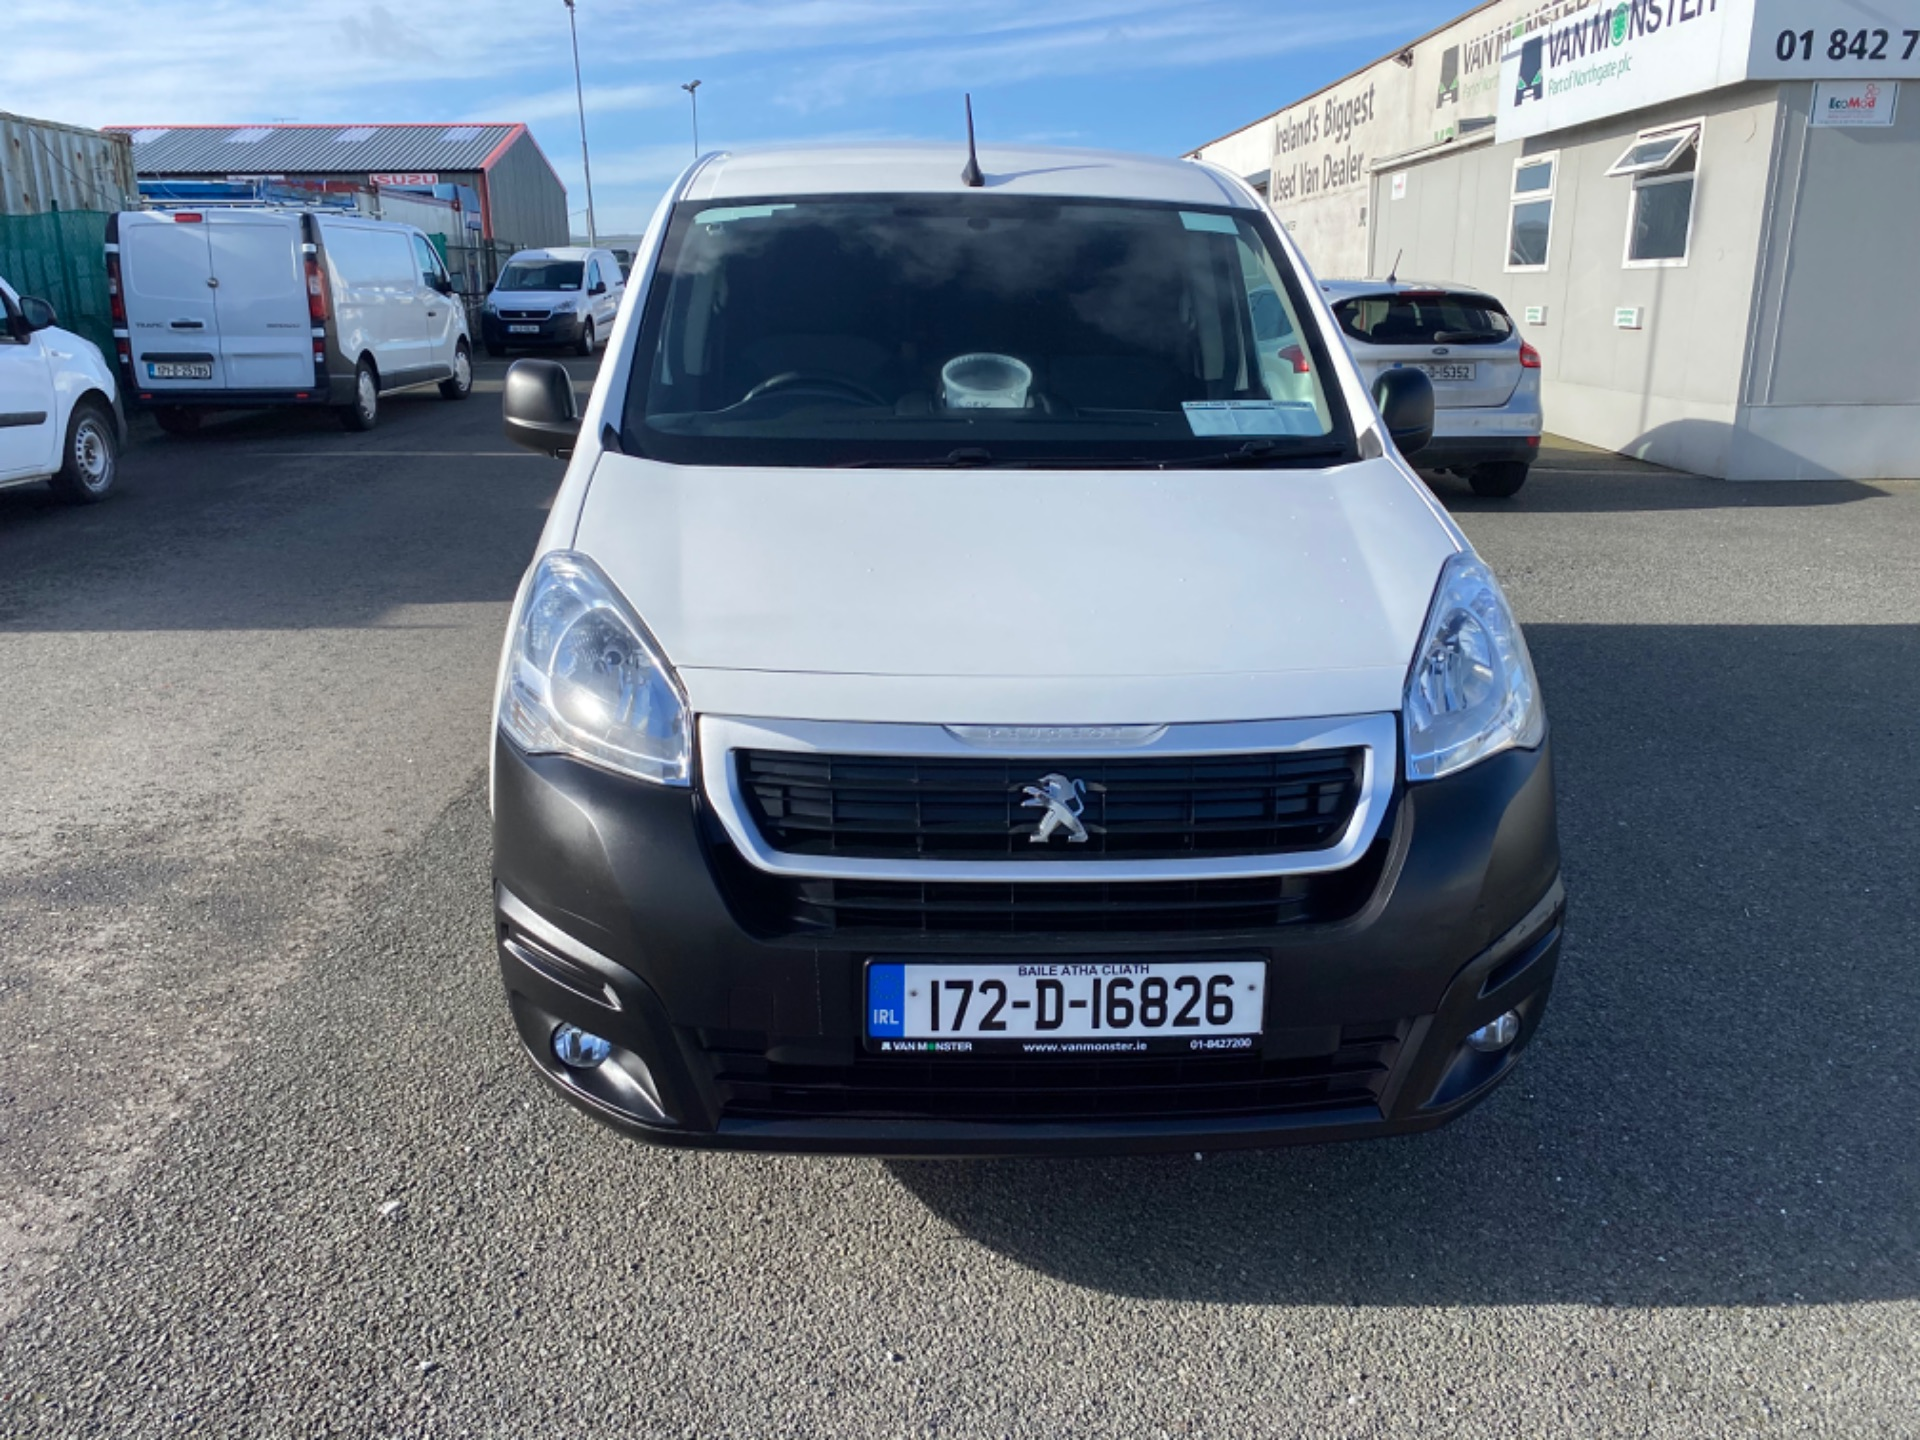 2017 Peugeot Partner Professional 1.6 Blue HDI 100 (172D16826) Image 2